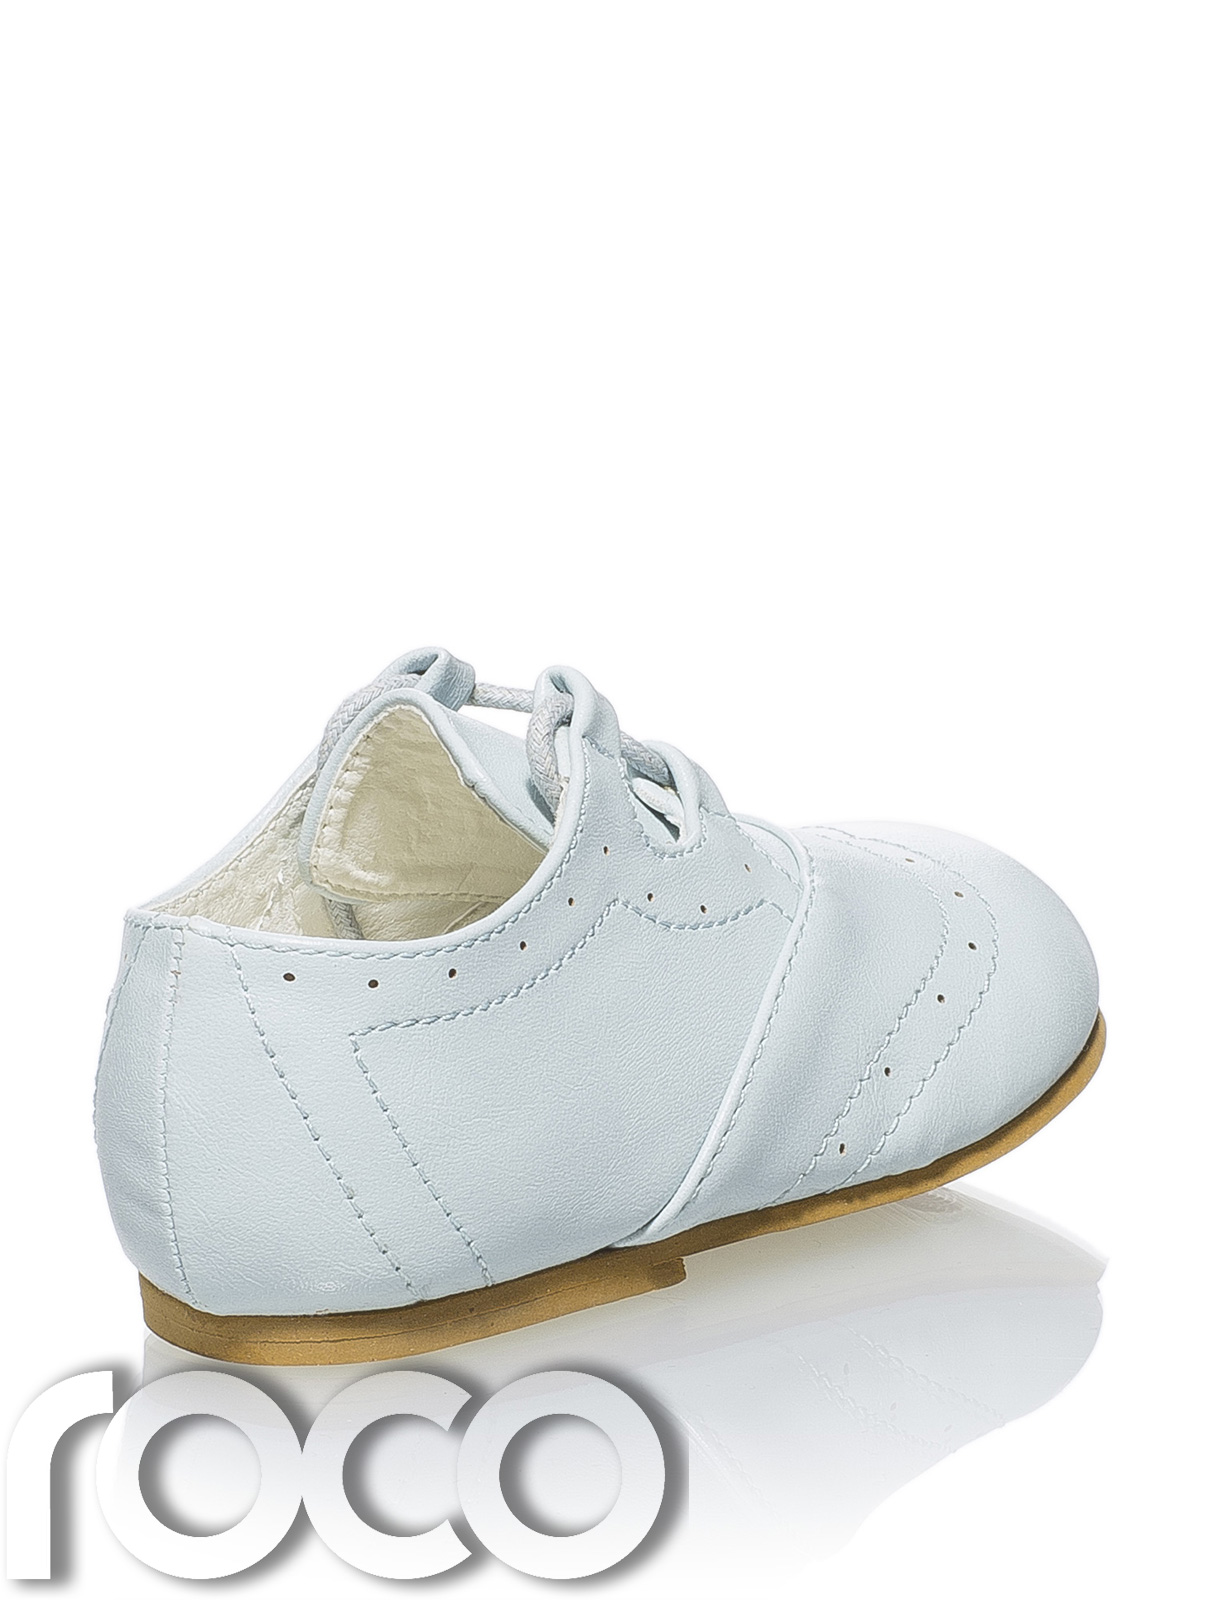 Baby Shoes: Put Your Baby's Best Foot Forward. Baby shoes are the cutest whether they're functional or just there to complete the look. As your child grows, a pair of baby walking shoes keep little feet supported and safe as they explore.